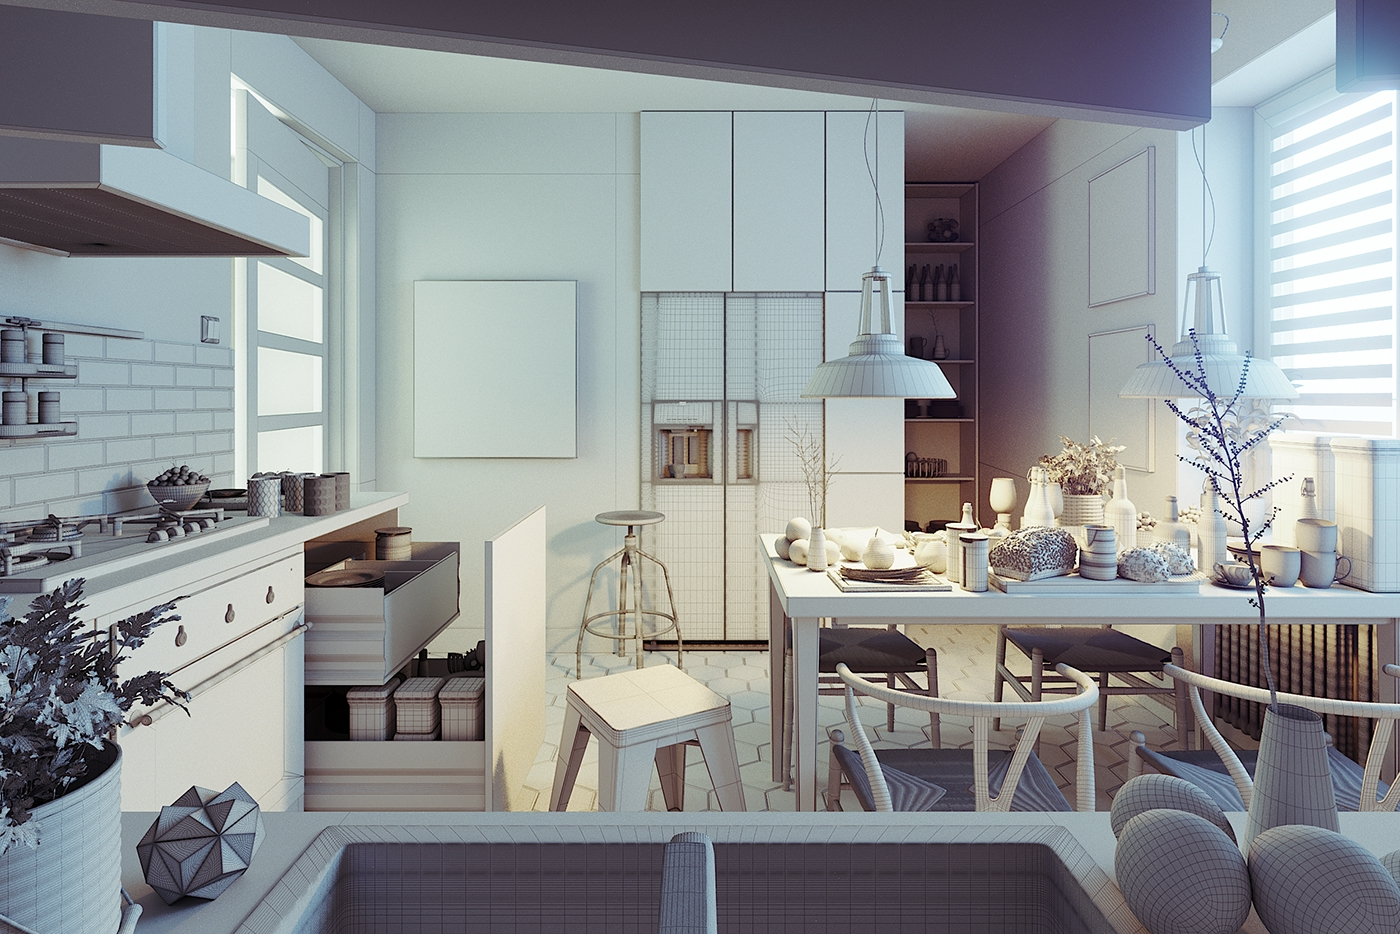 Kitchen, rendered in 3Ds Max 2014 and Corona on Behance